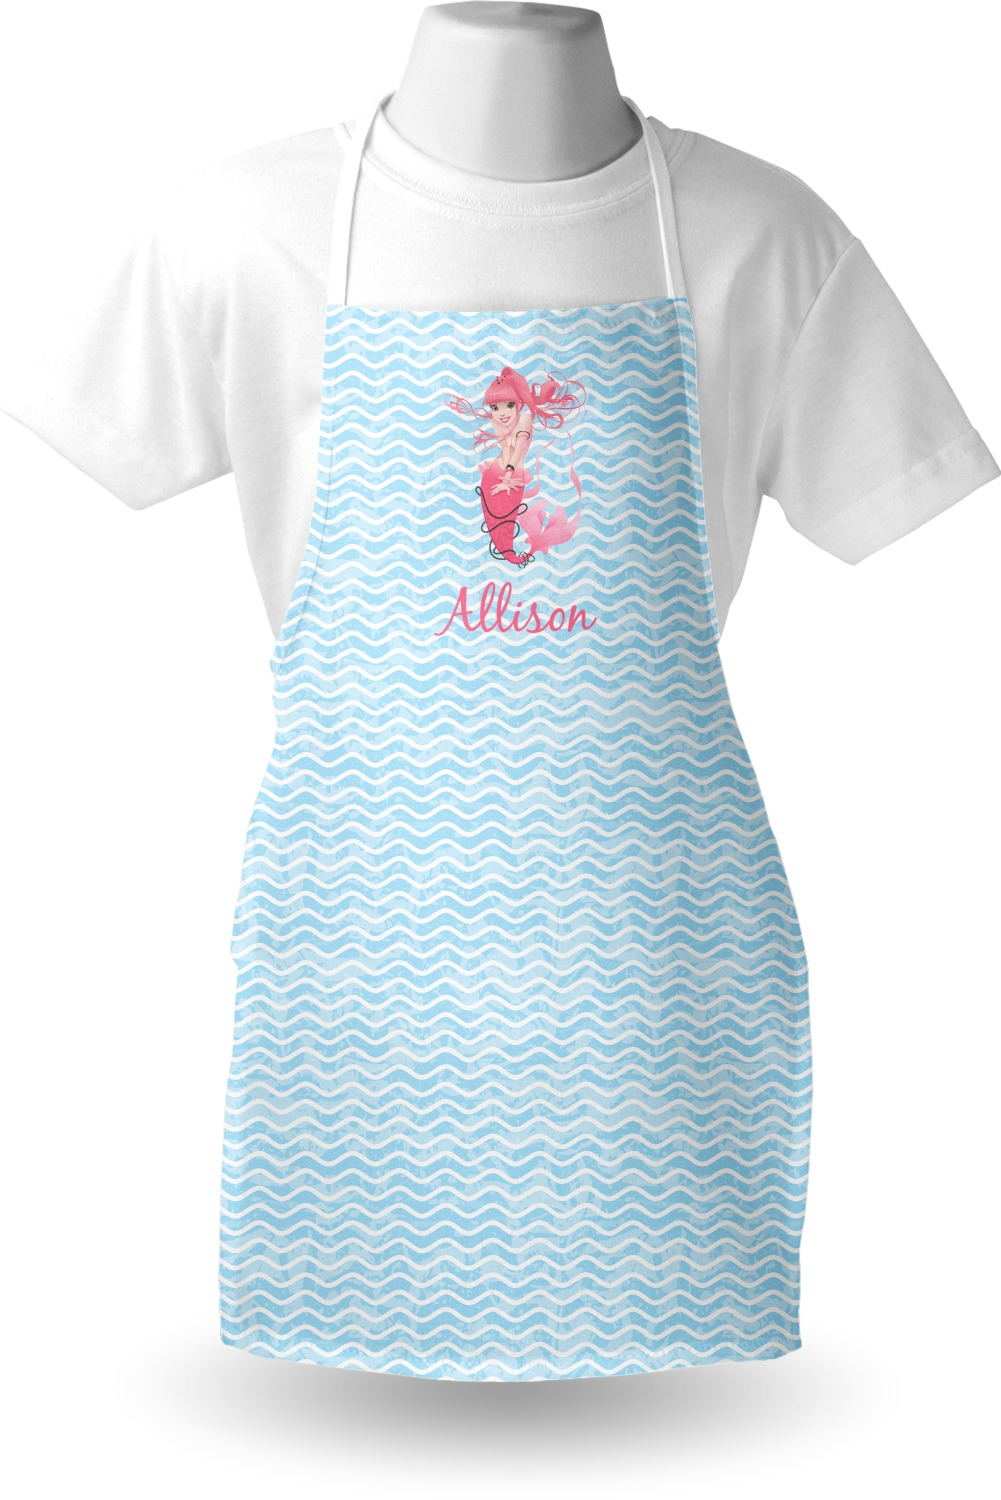 Mermaid Apron (Personalized) - YouCustomizeIt